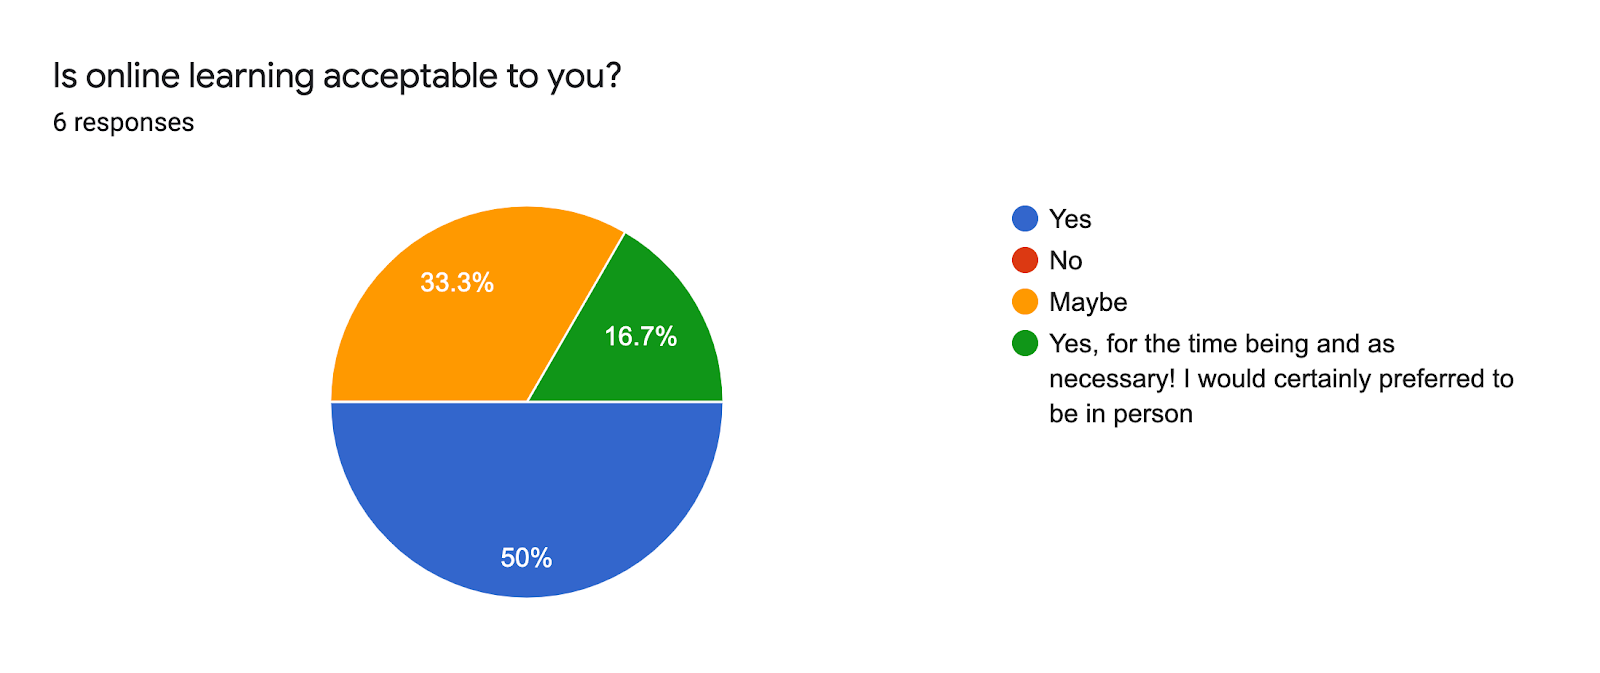 Forms response chart. Question title: Is online learning acceptable to you?. Number of responses: 6 responses.